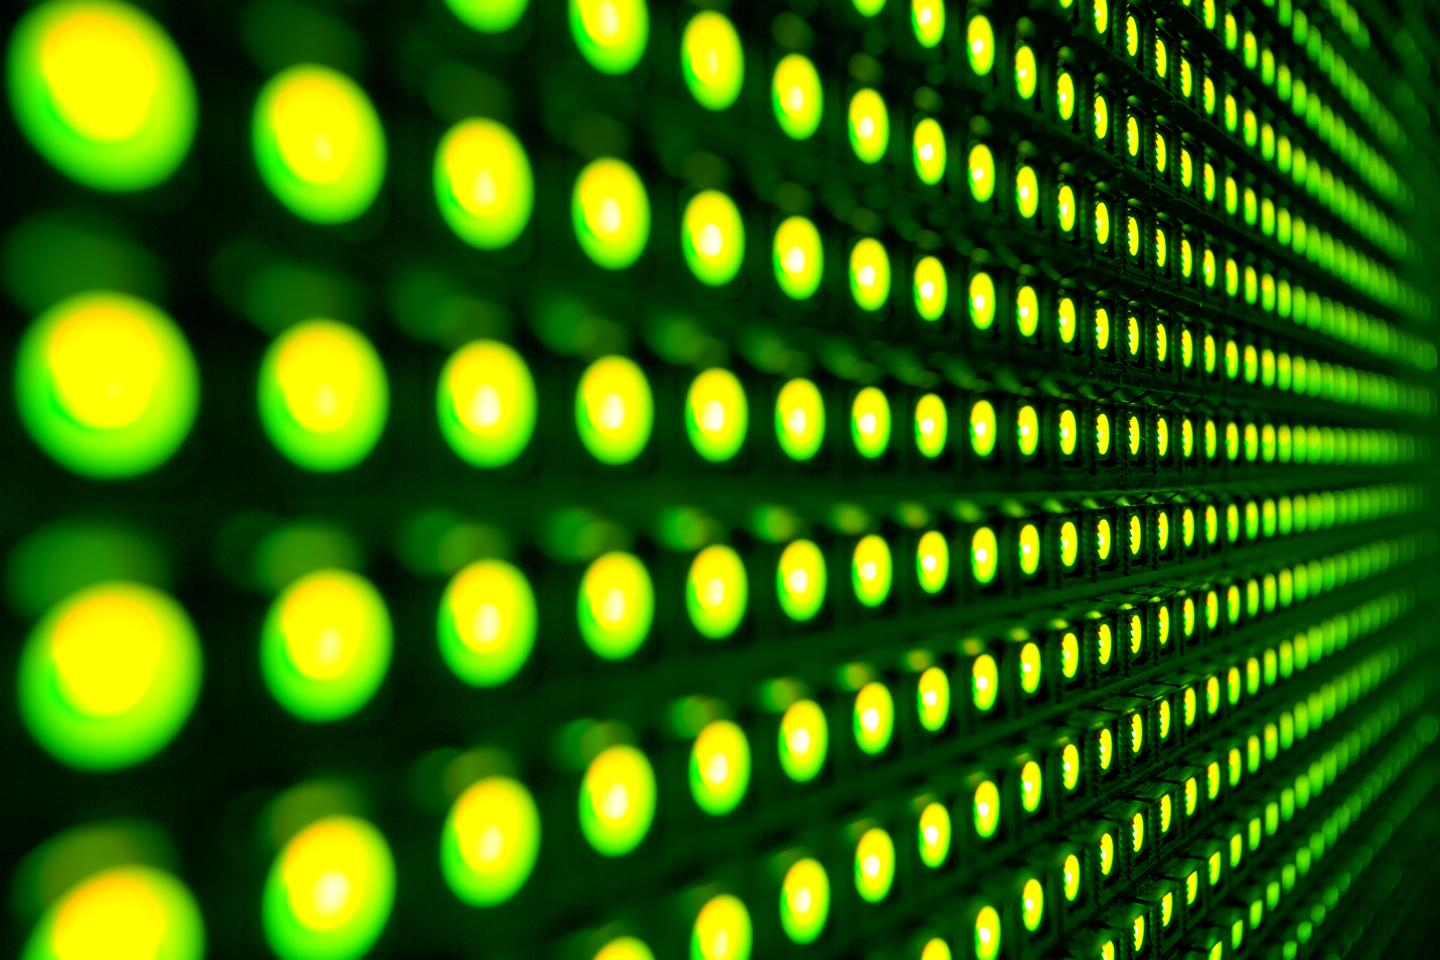 Researchers at Princeton University claim to have increased the light output of organic LEDs by 57 percent (Photo: Shutterstock)